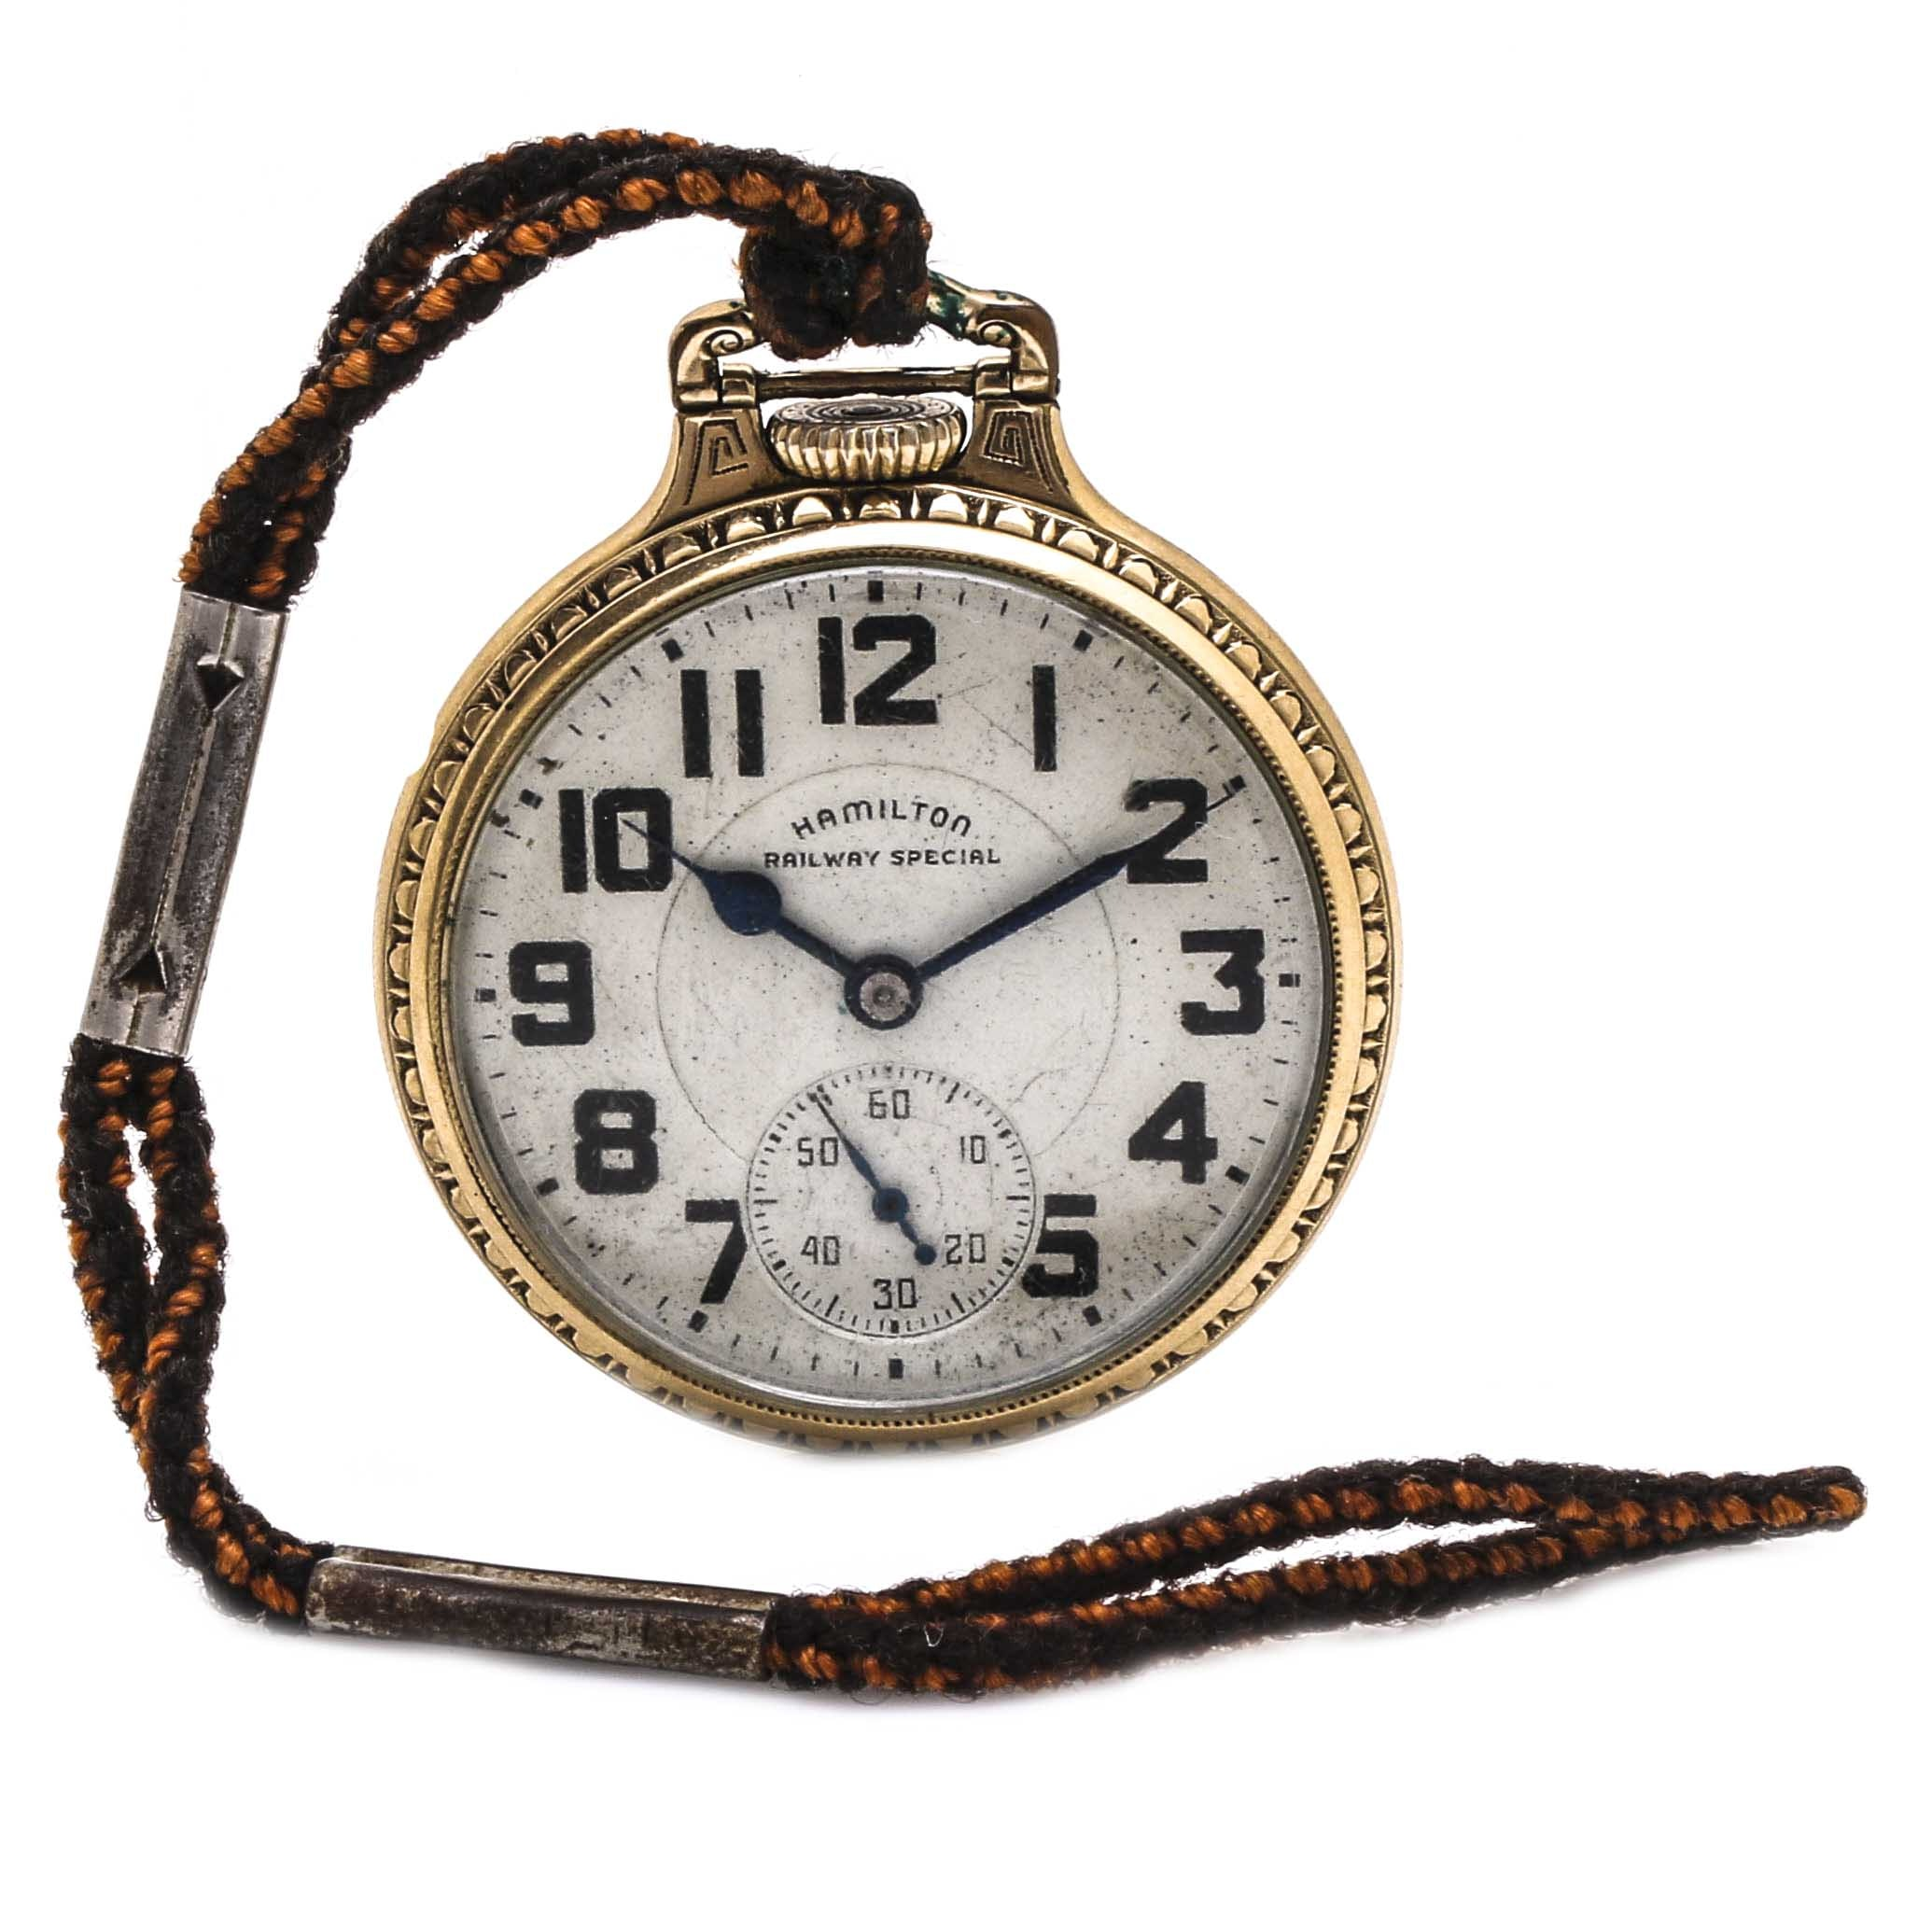 Vintage Hamilton Railway Special Gold Filled Pocket Watch